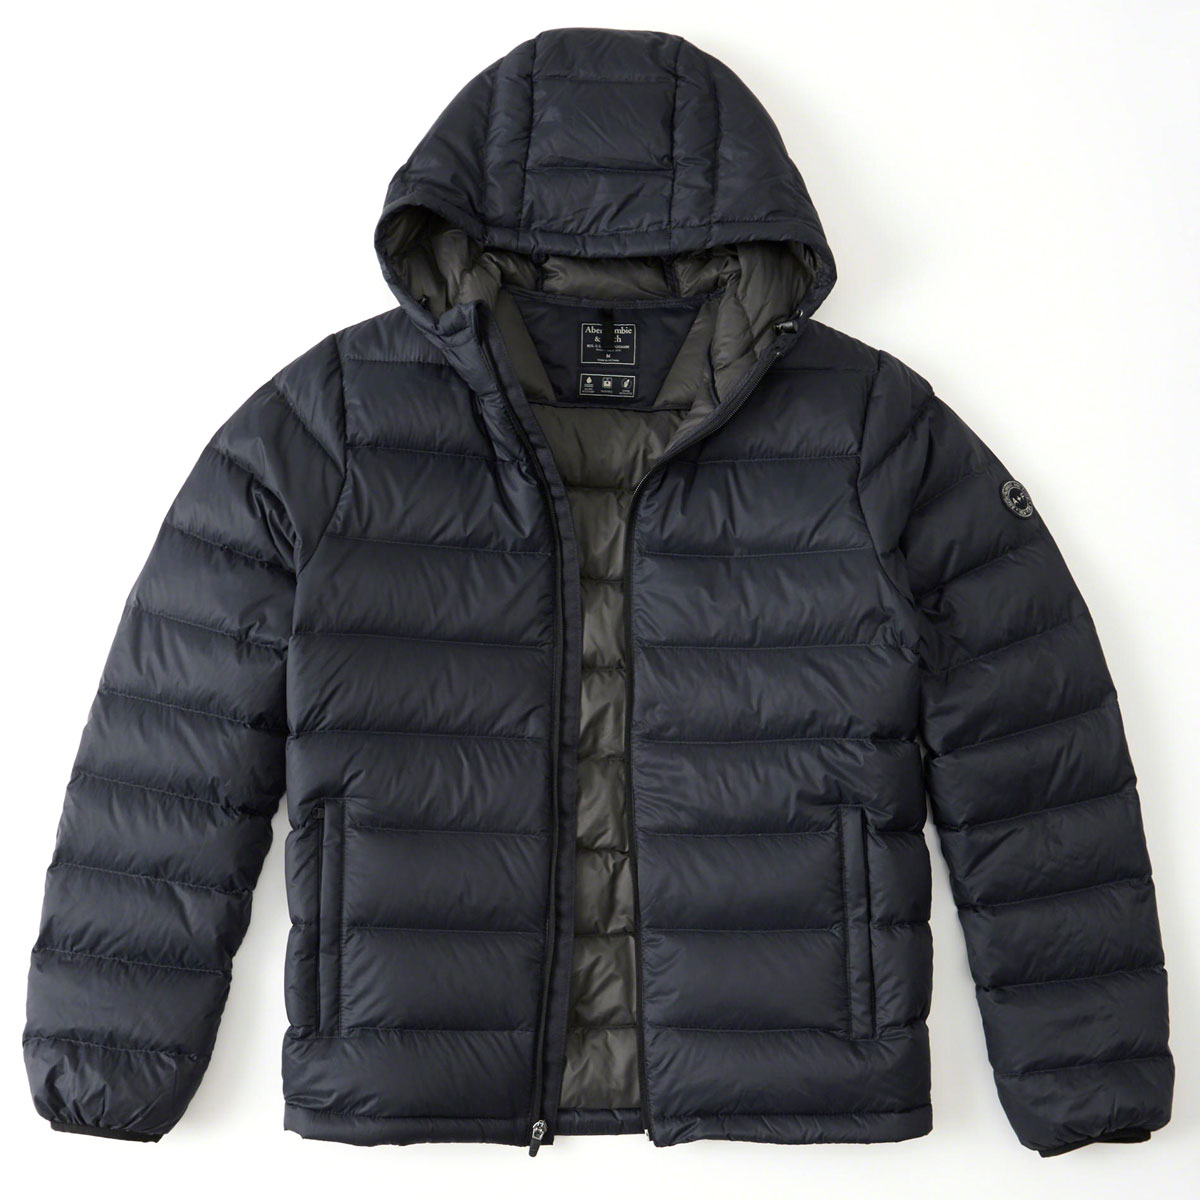 82ce7e253 ABBA black outer men's regular article Abercrombie & Fitch jacket down  jacket LIGHTWEIGHT HOODED PUFFER JACKET 132-328-1209-900